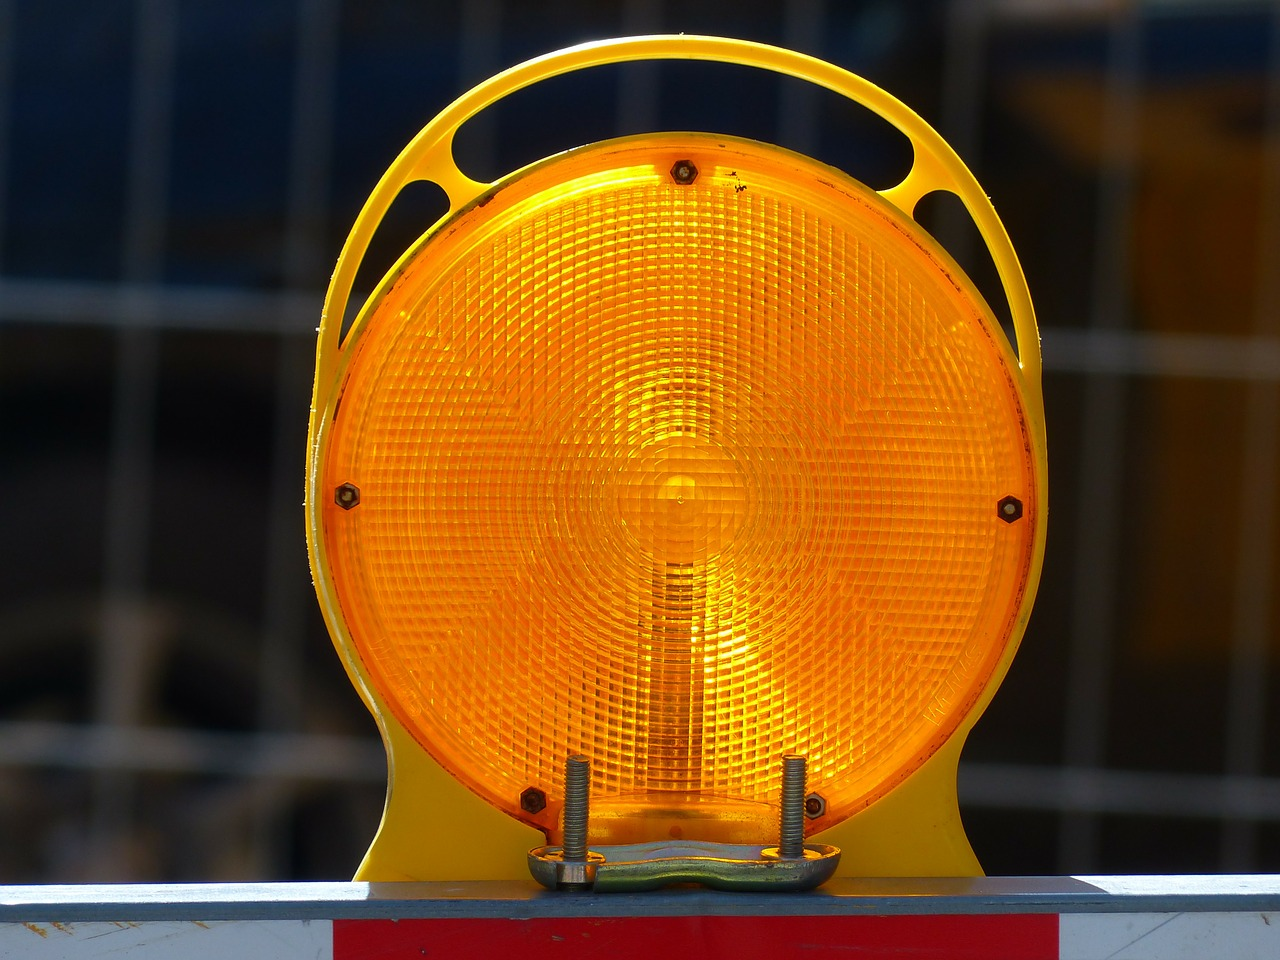 warning lamp warning light warnblinkleuchte free photo